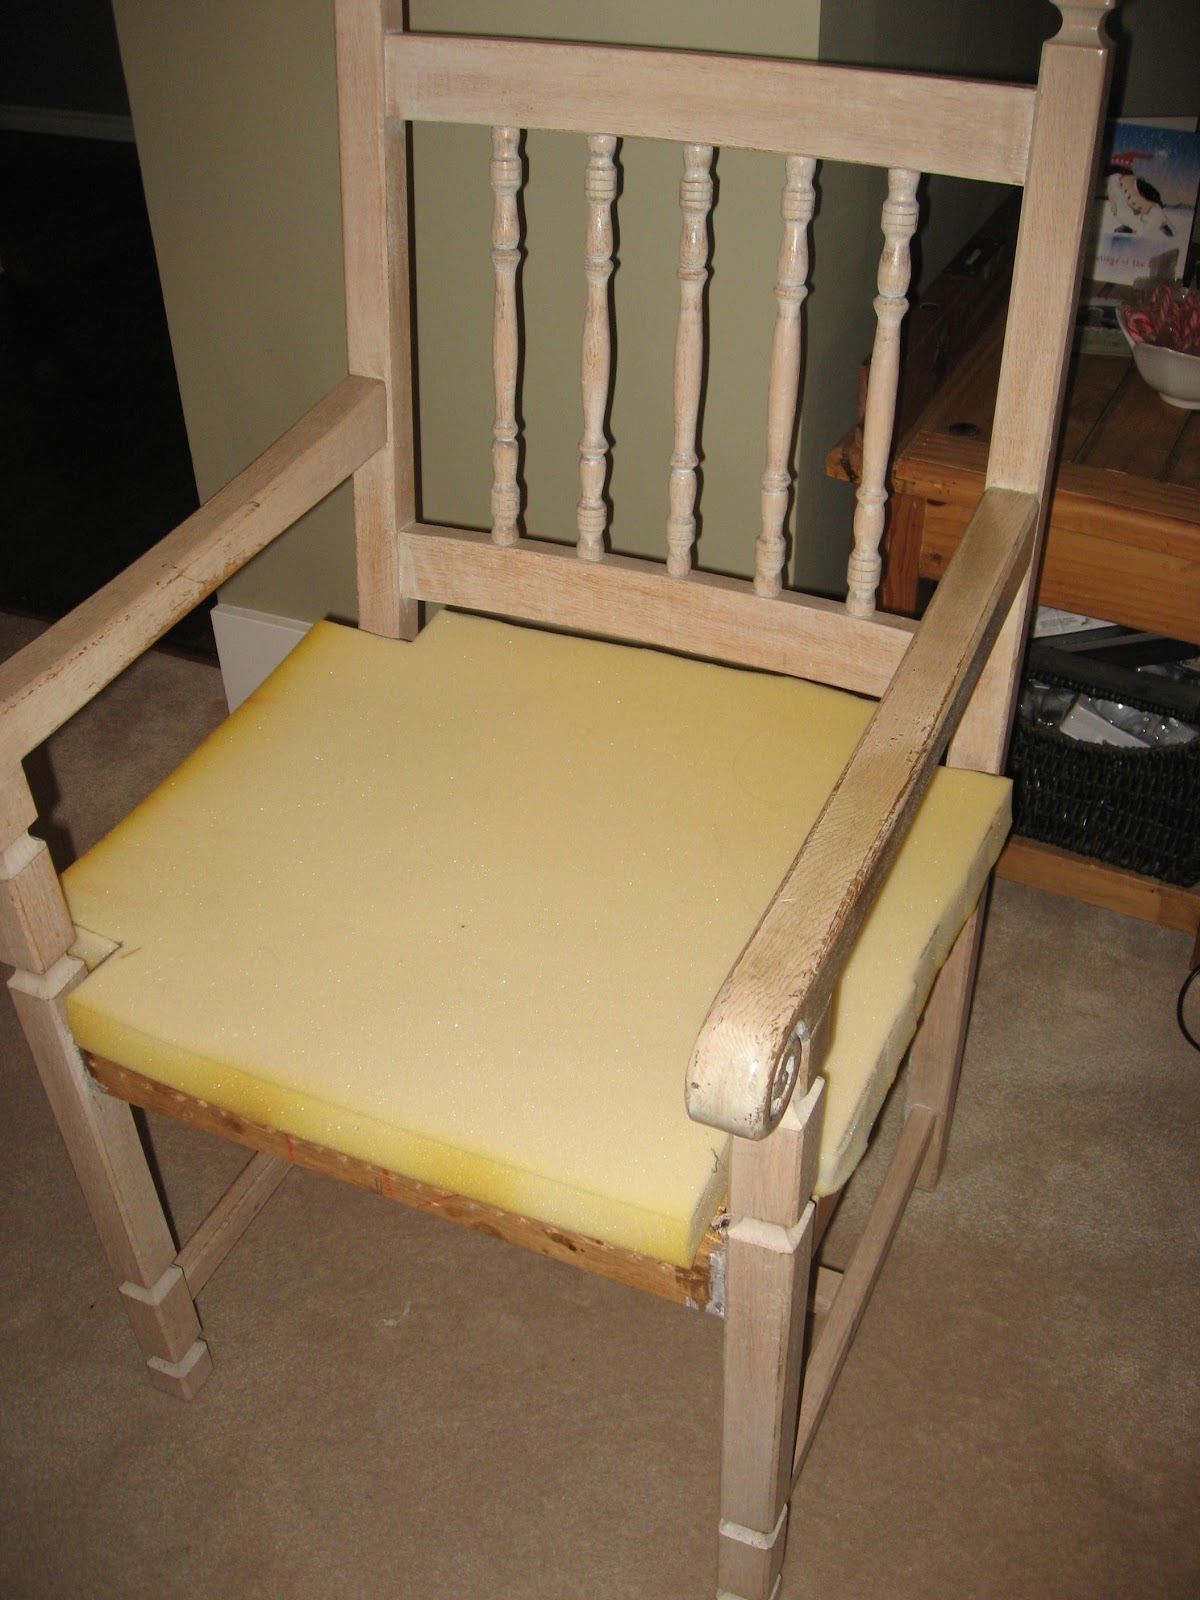 The original fabric upholstery was removed along with all of the